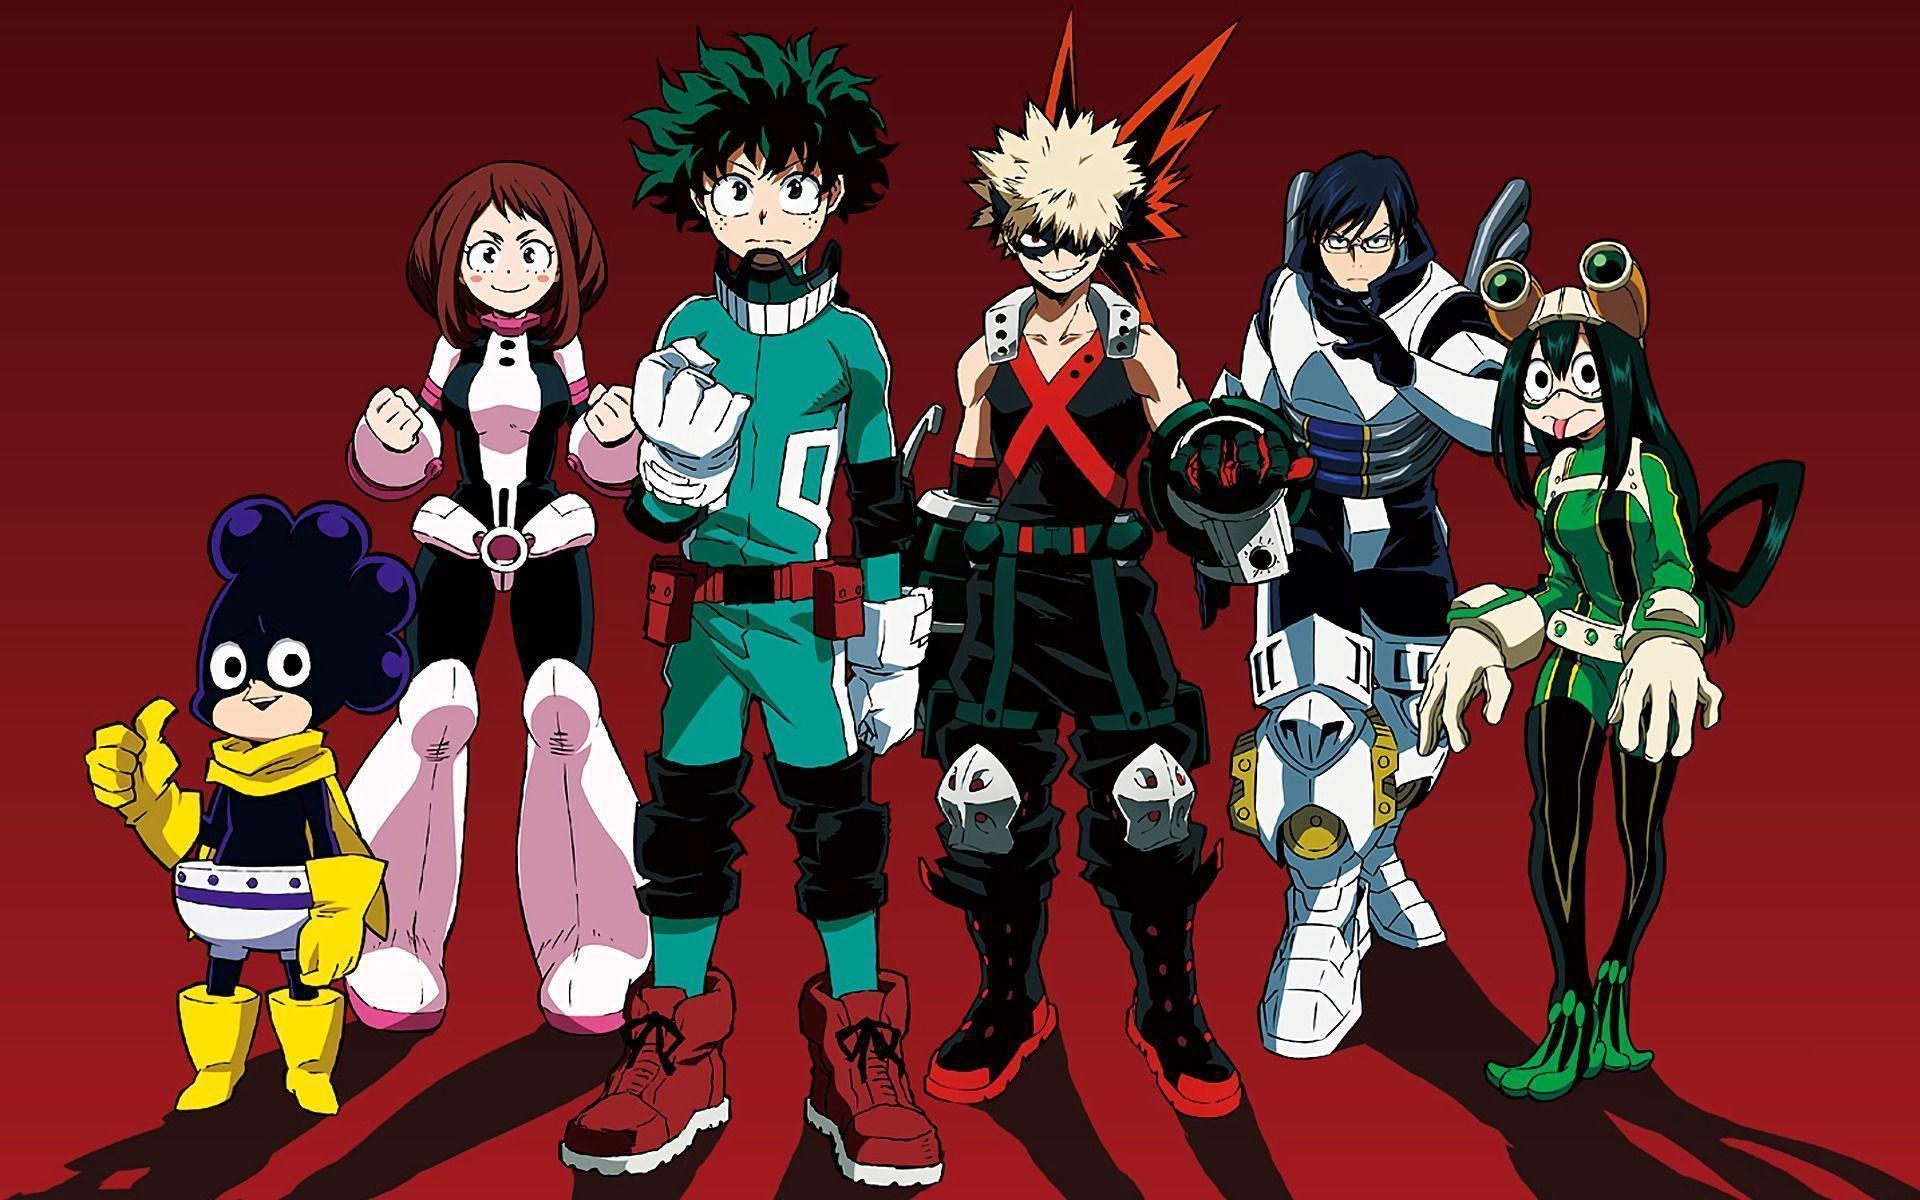 Hd wallpapers and background images. My Hero Academia HD Wallpapers - Wallpaper Cave